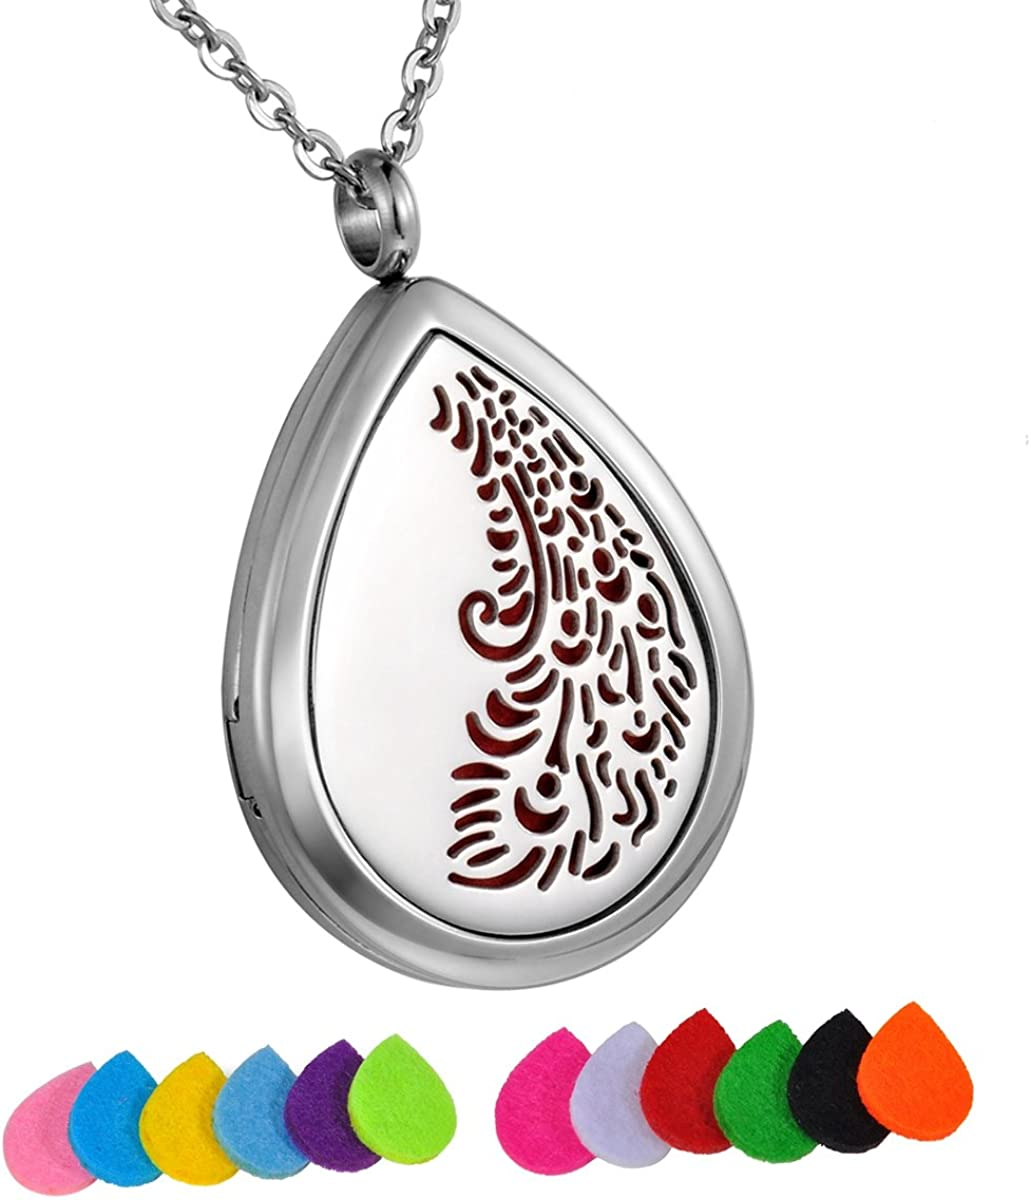 HooAMI Aromatherapy Essential Oil Diffuser Necklace - Stainless Steel Pteris Waterdrop Locket Pendant